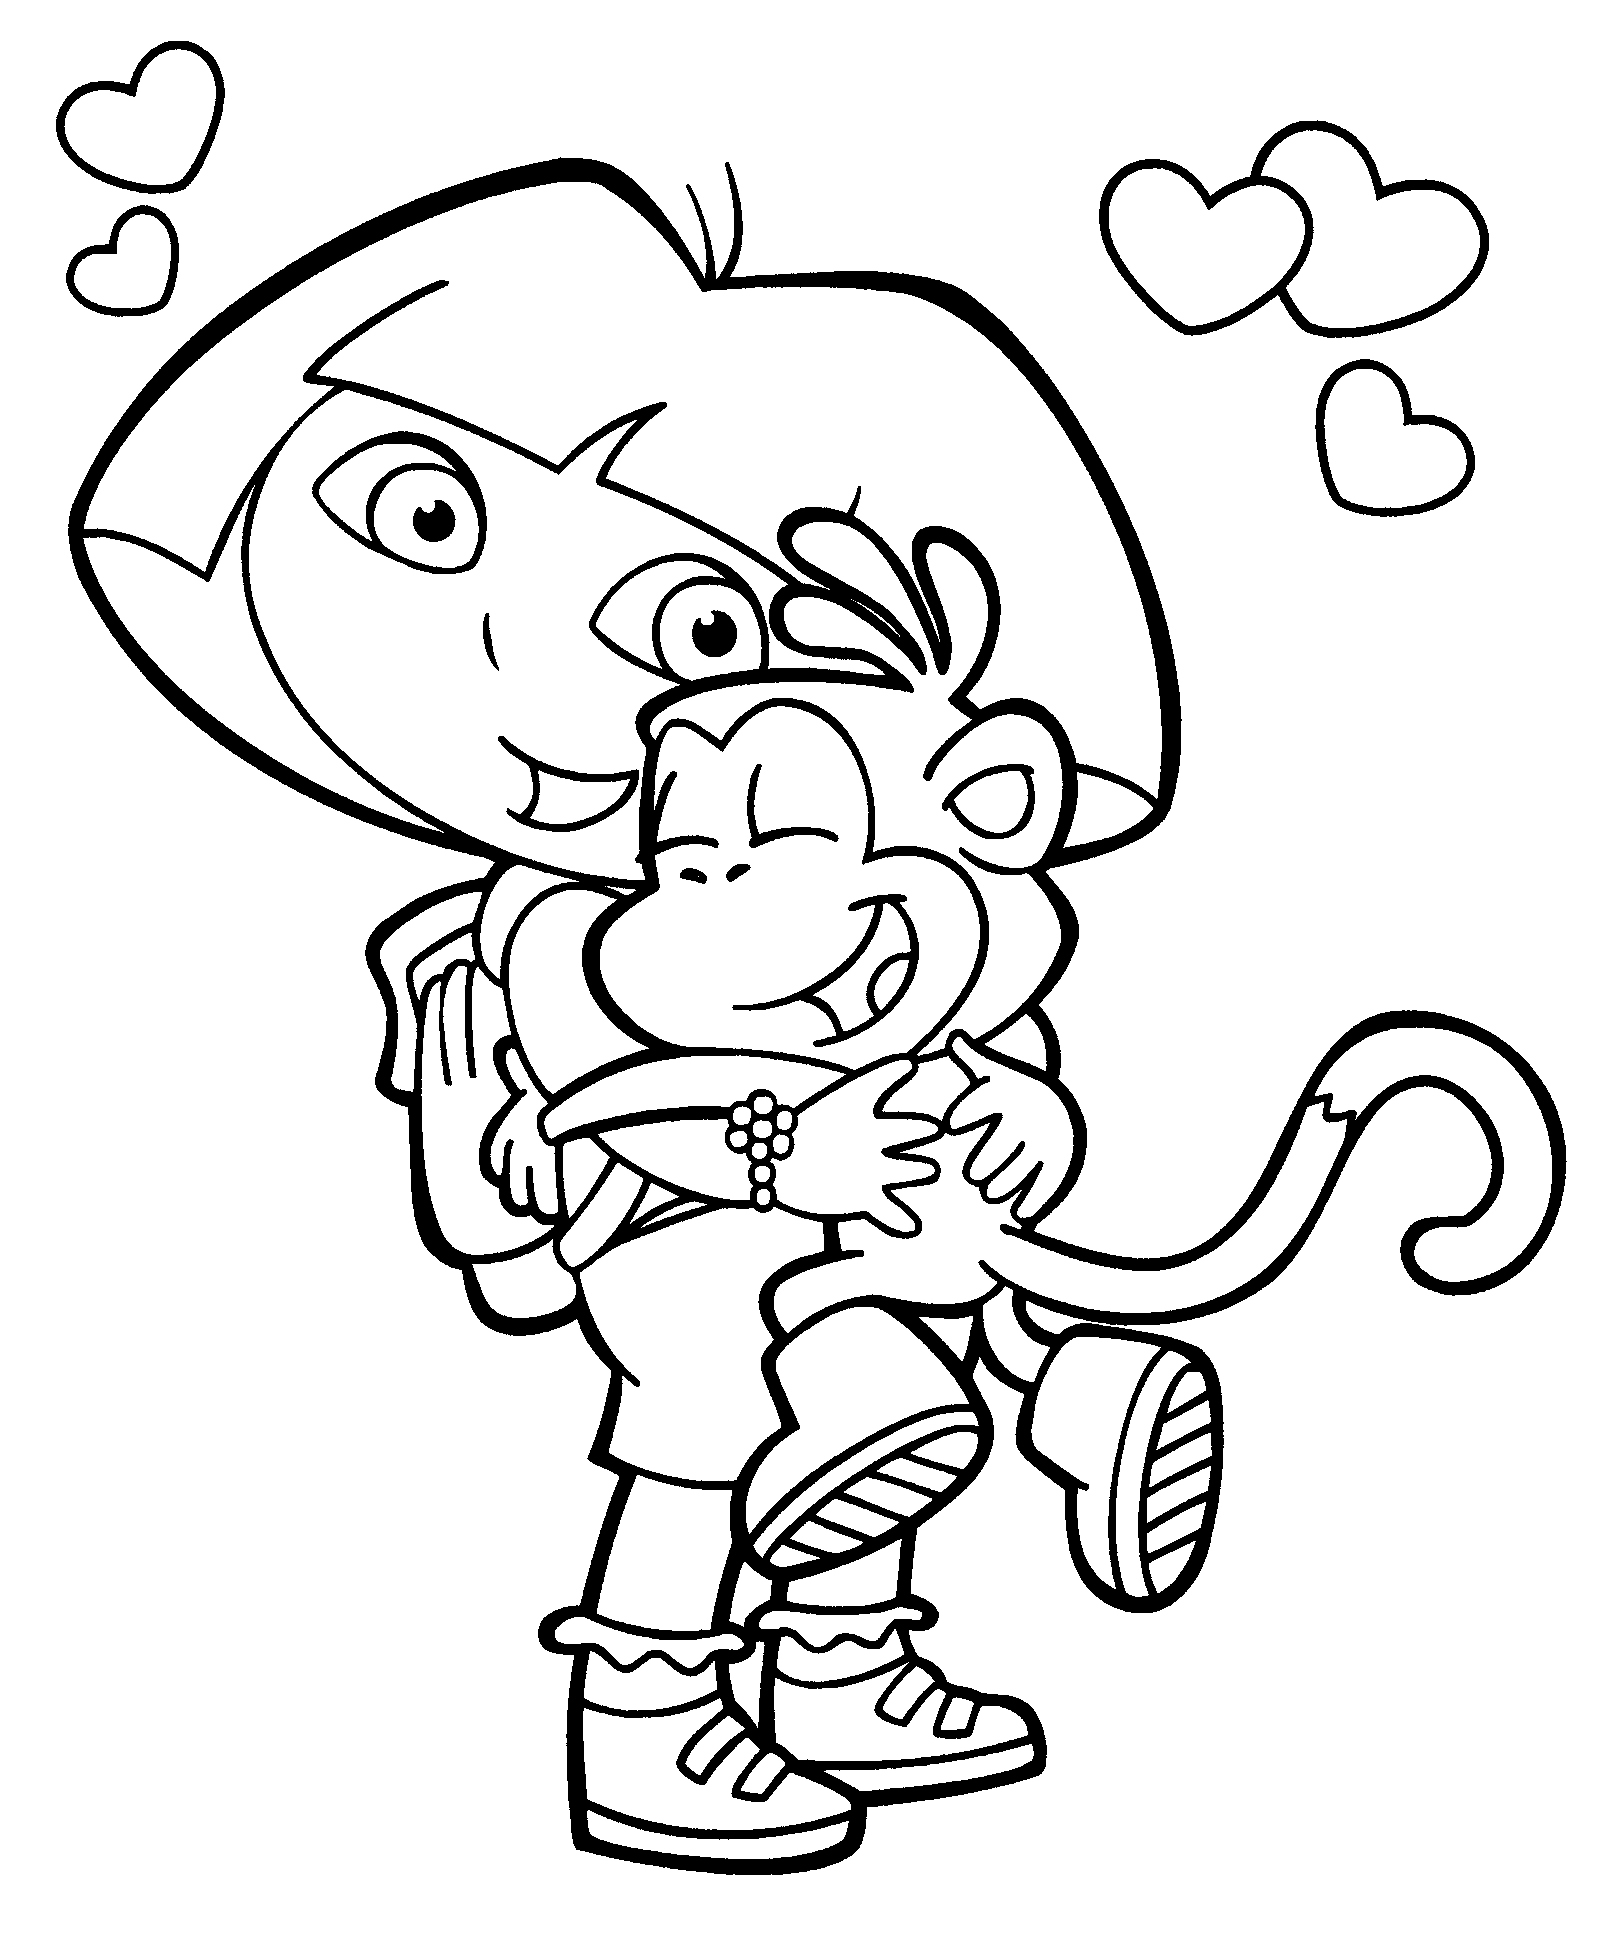 Download Nick Jr Coloring Pages 21